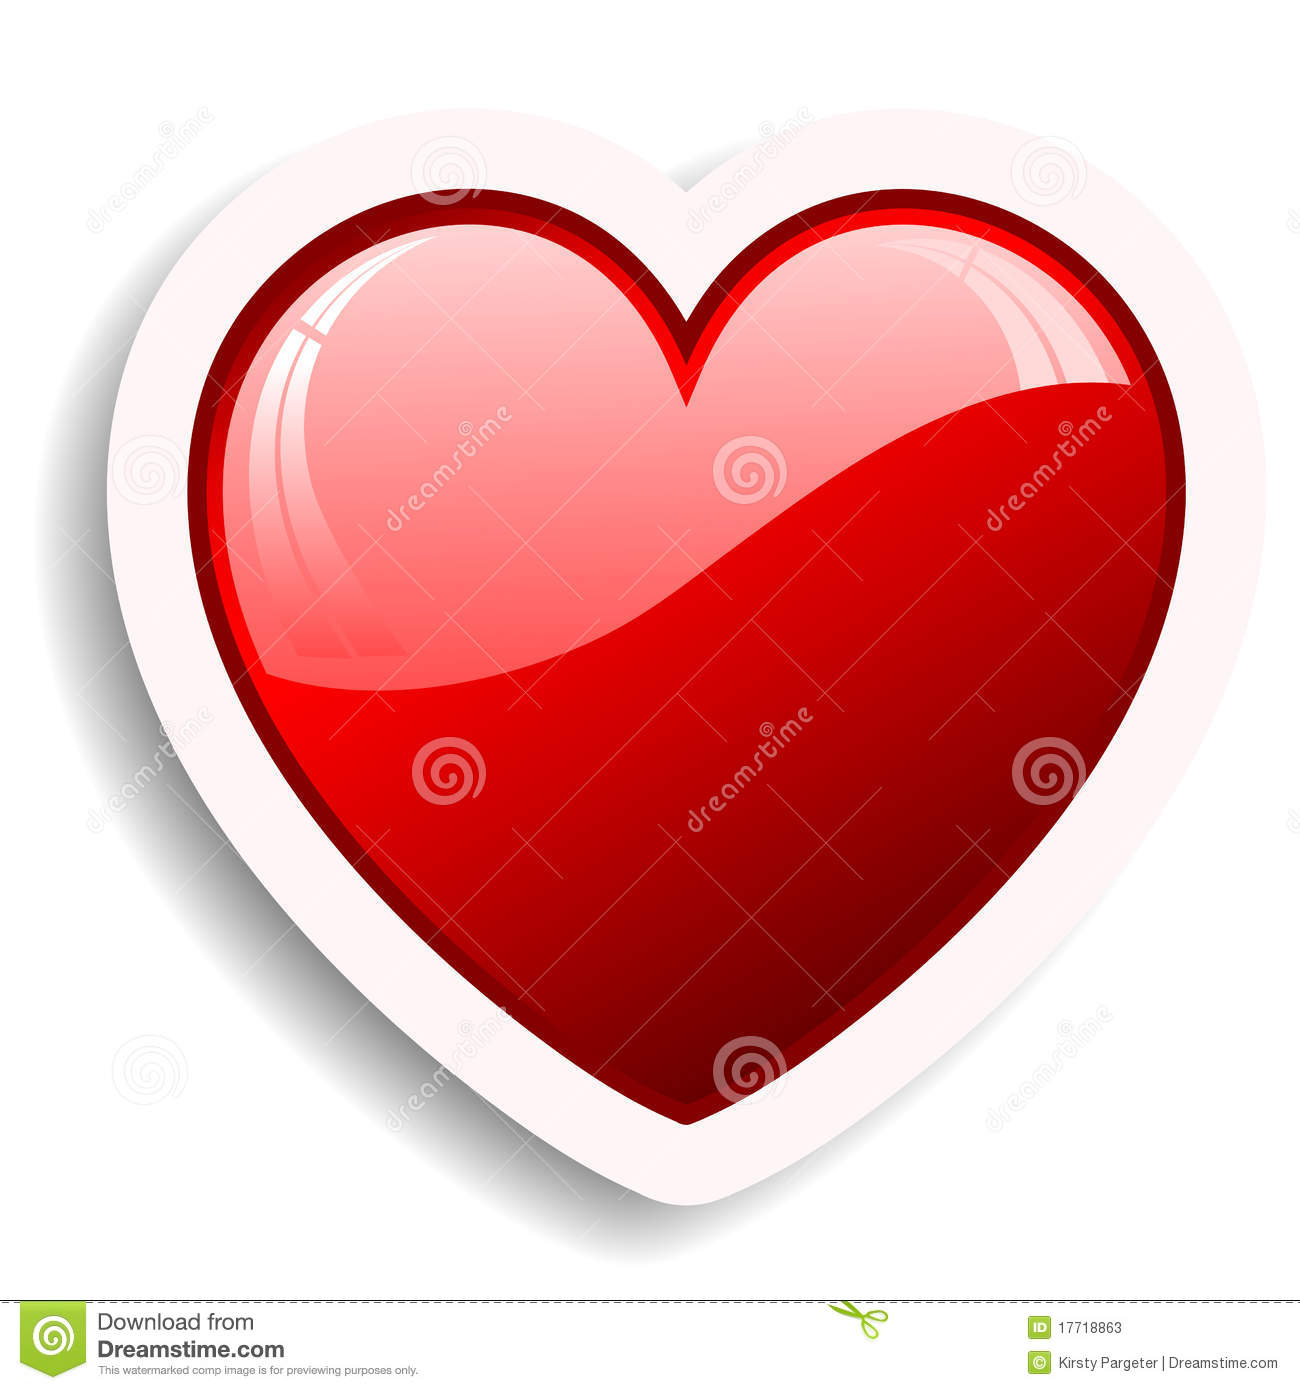 Heart Icon Stock Photos - Image: 17718863